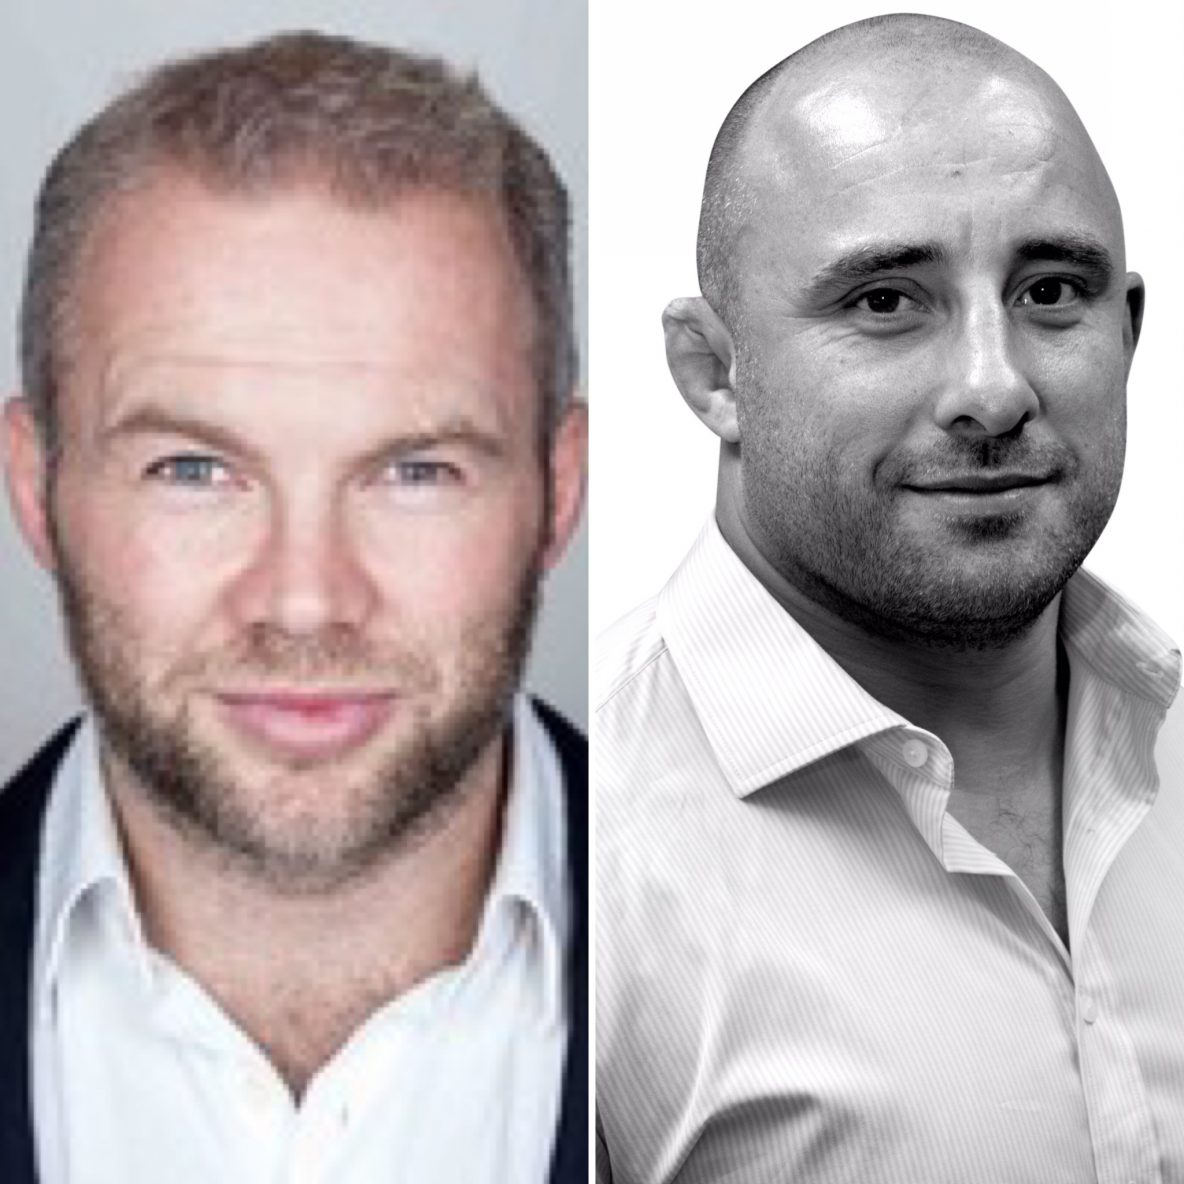 Image of Ollie Phillips and David Flatman